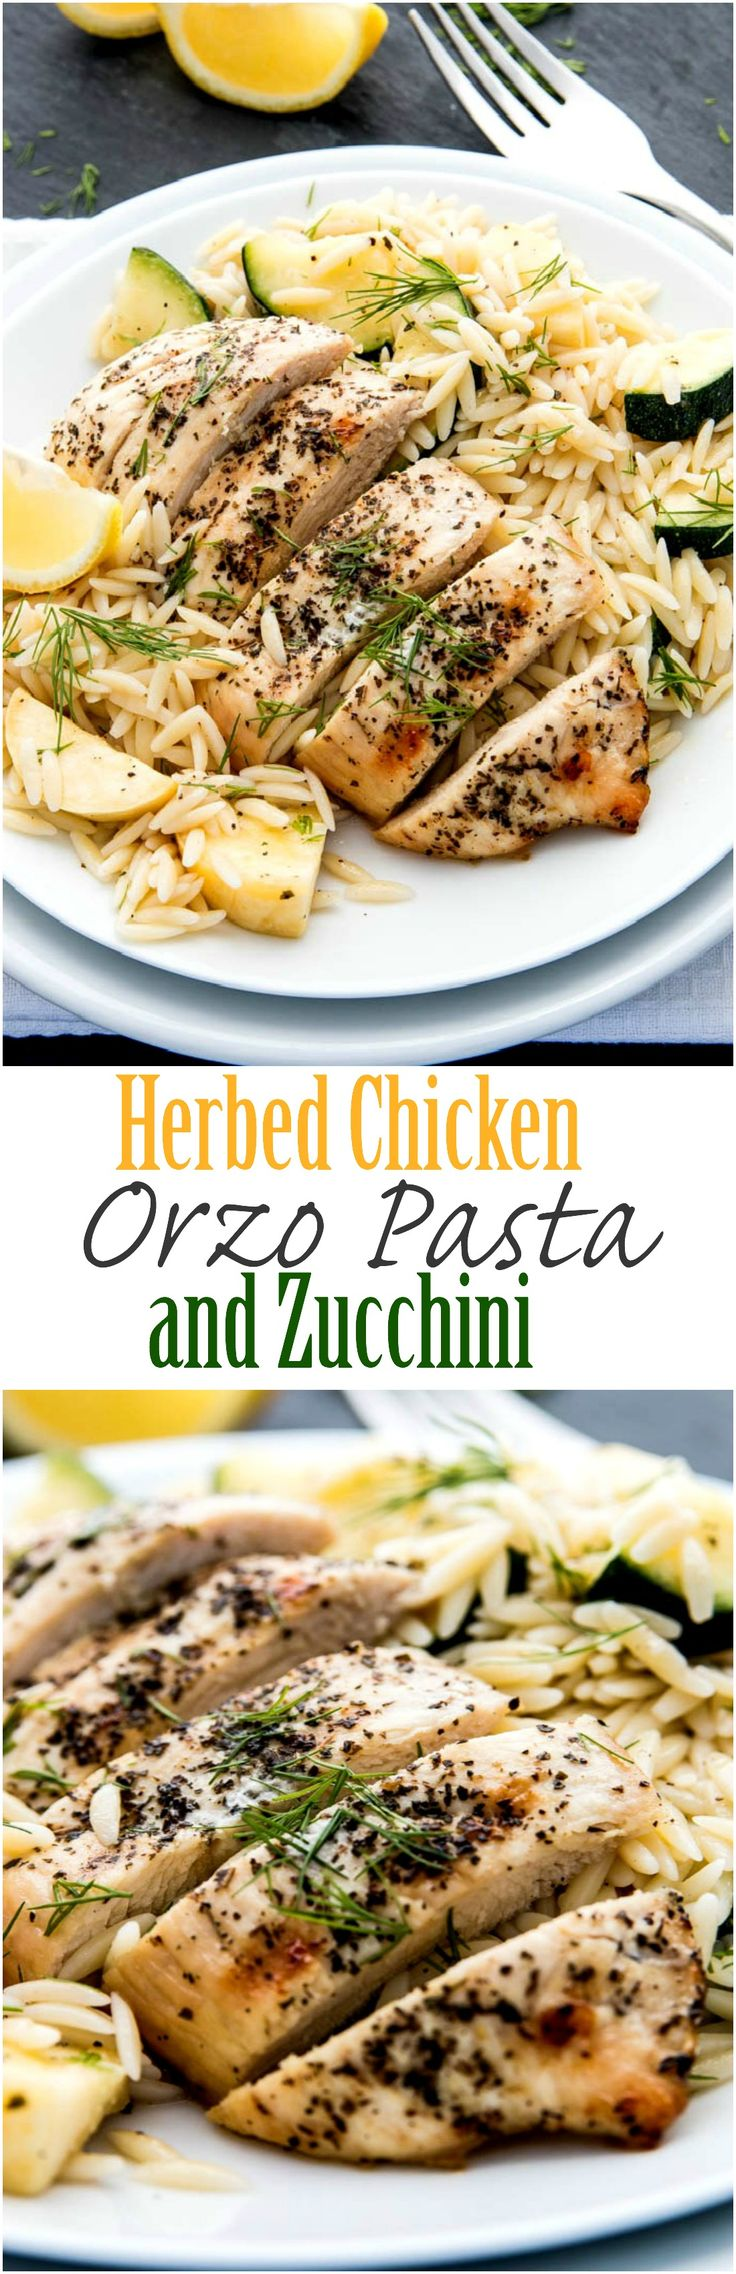 Herbed Chicken Orzo Pasta and Zucchini | Recipe | Food recipes | Pinterest | Food, Chicken Recipes and Recipes